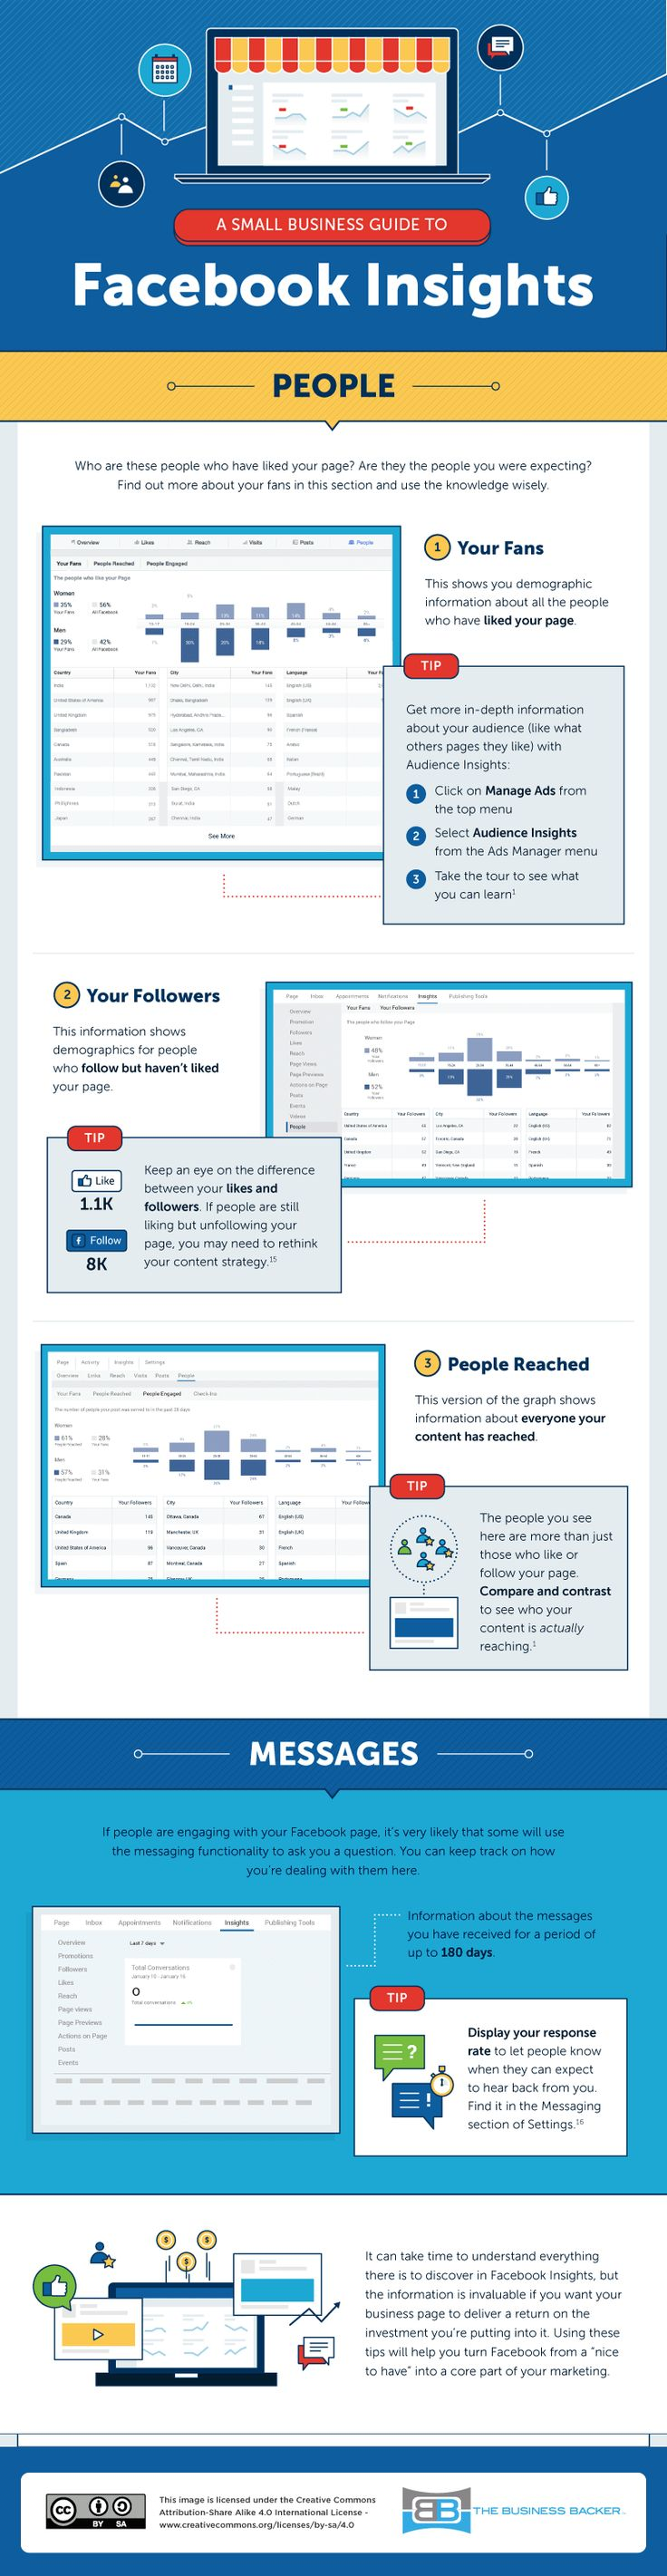 1534899237_734_Marketing-Infographic-Facebook-marketing-tips-Wondering-how-to-use-Facebook-Insights-for-your-small-b Marketing Infographic : Facebook marketing tips: Wondering how to use Facebook Insights for your small b...